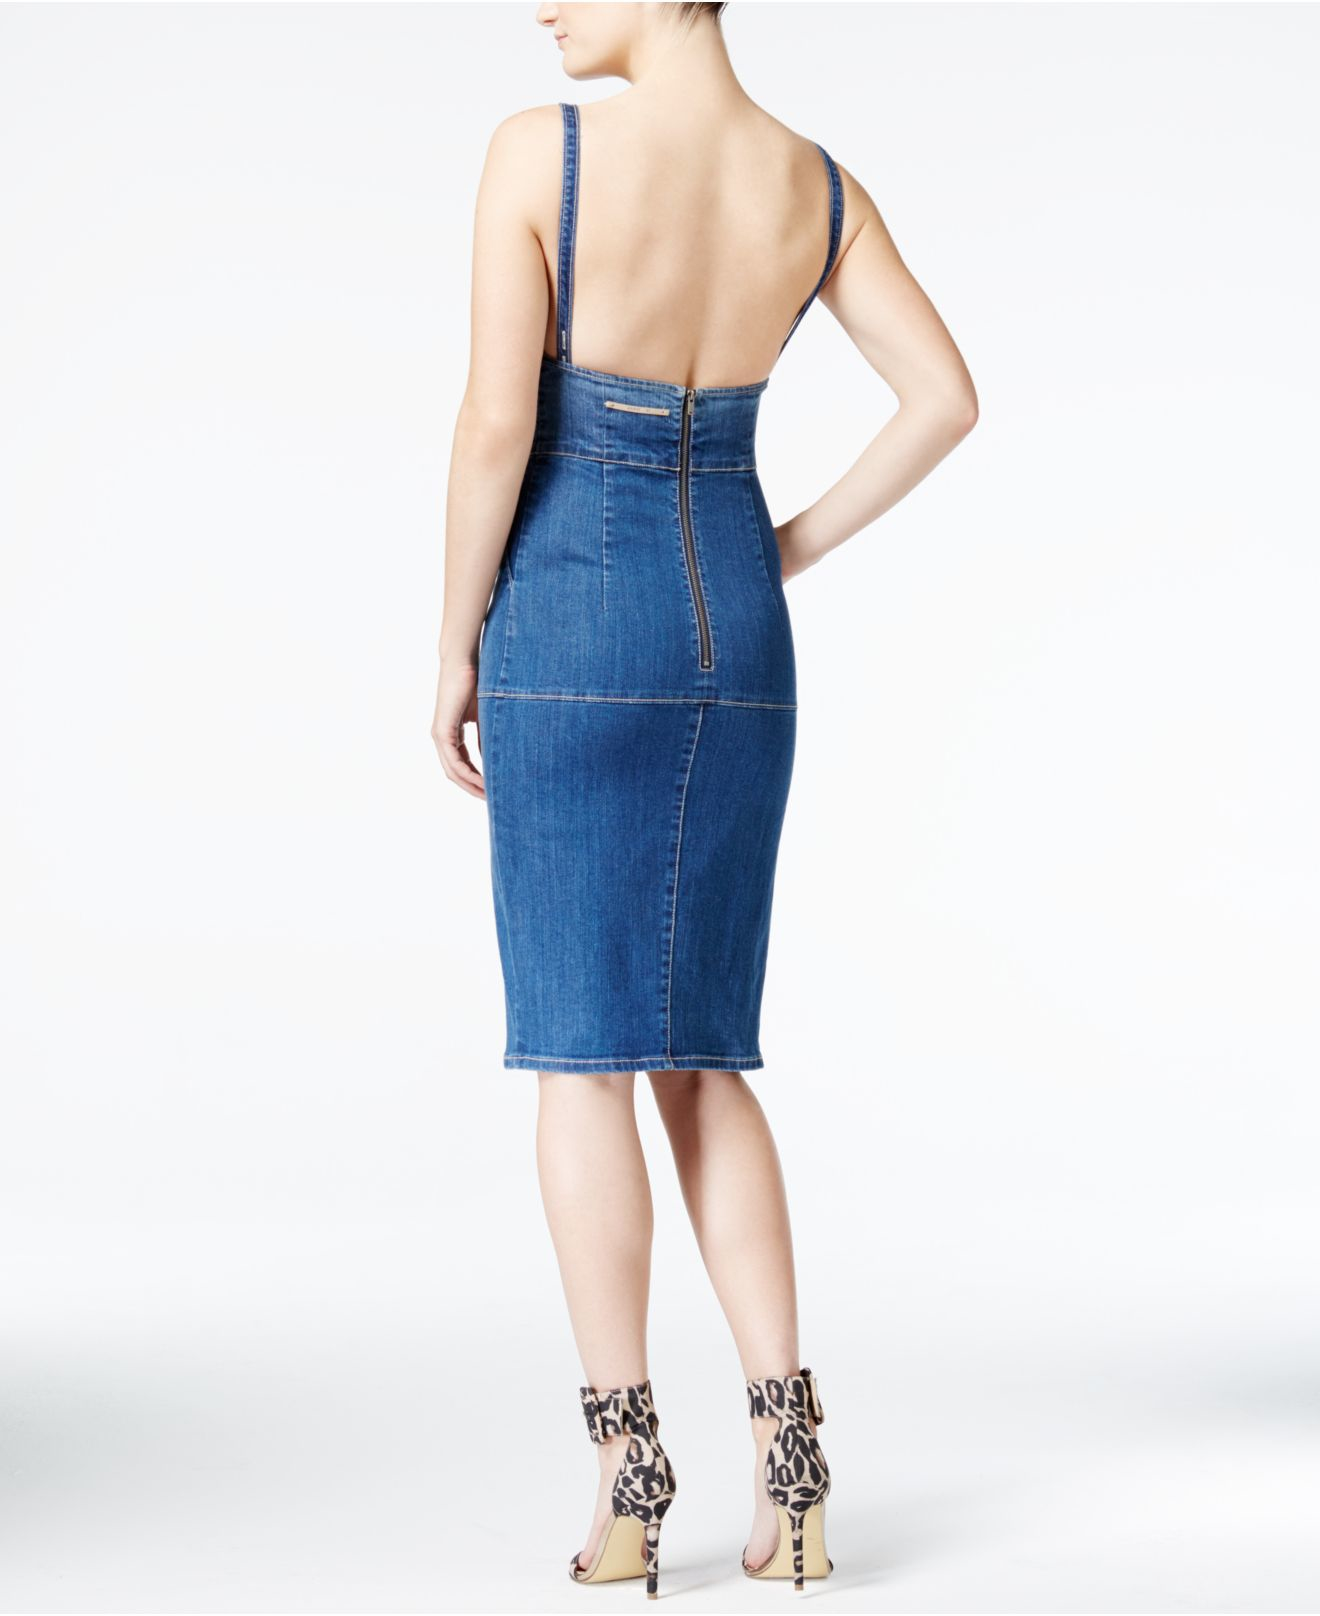 c9752ec52 Lyst - Guess Denim Bib Dress in Blue